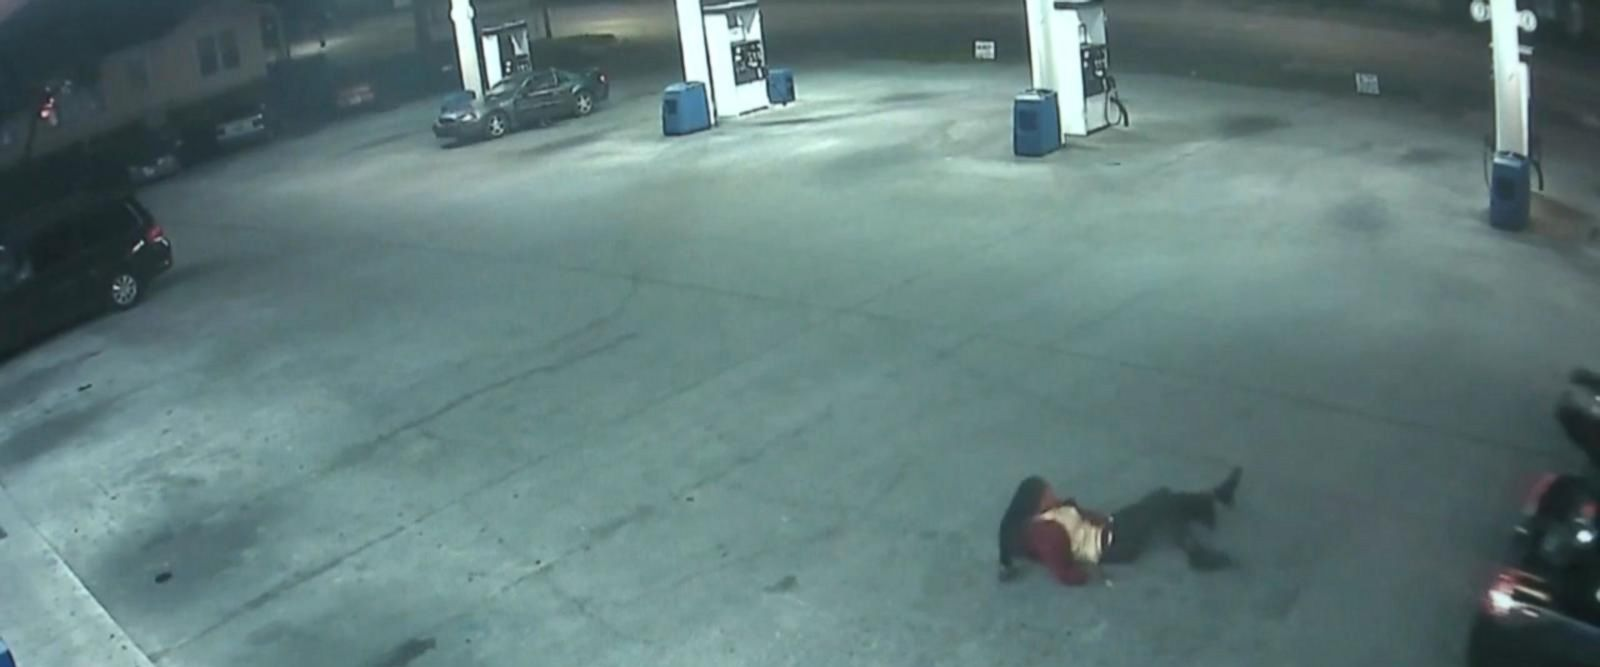 VIDEO: Kidnapping victim speaks out about escaping from the trunk of her own car